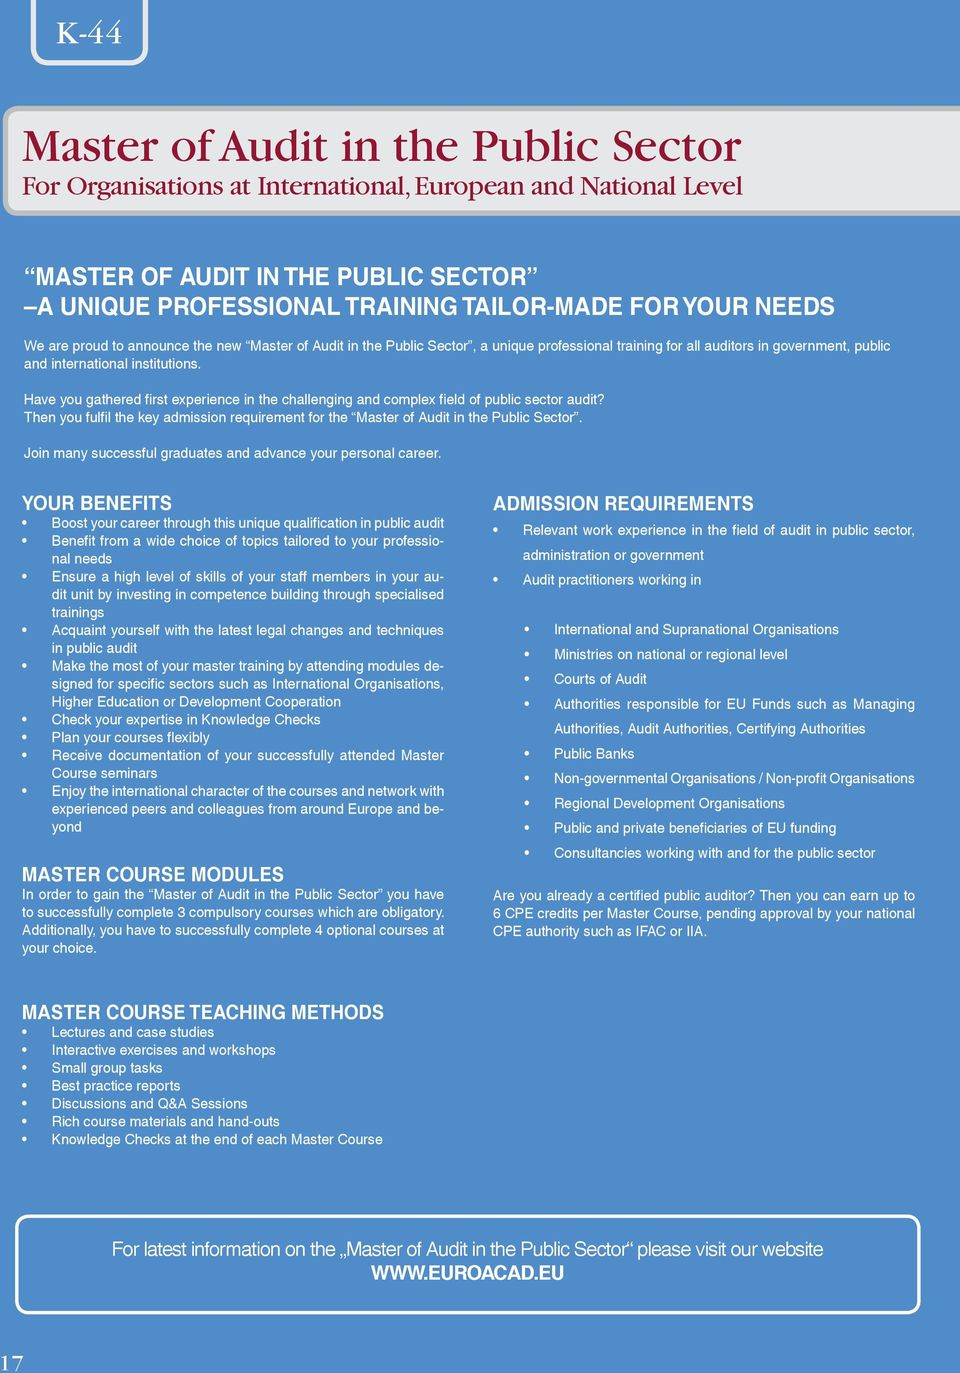 Have you gathered first experience in the challenging and complex field of public sector audit? Then you fulfil the key admission requirement for the Master of Audit in the Public Sector.